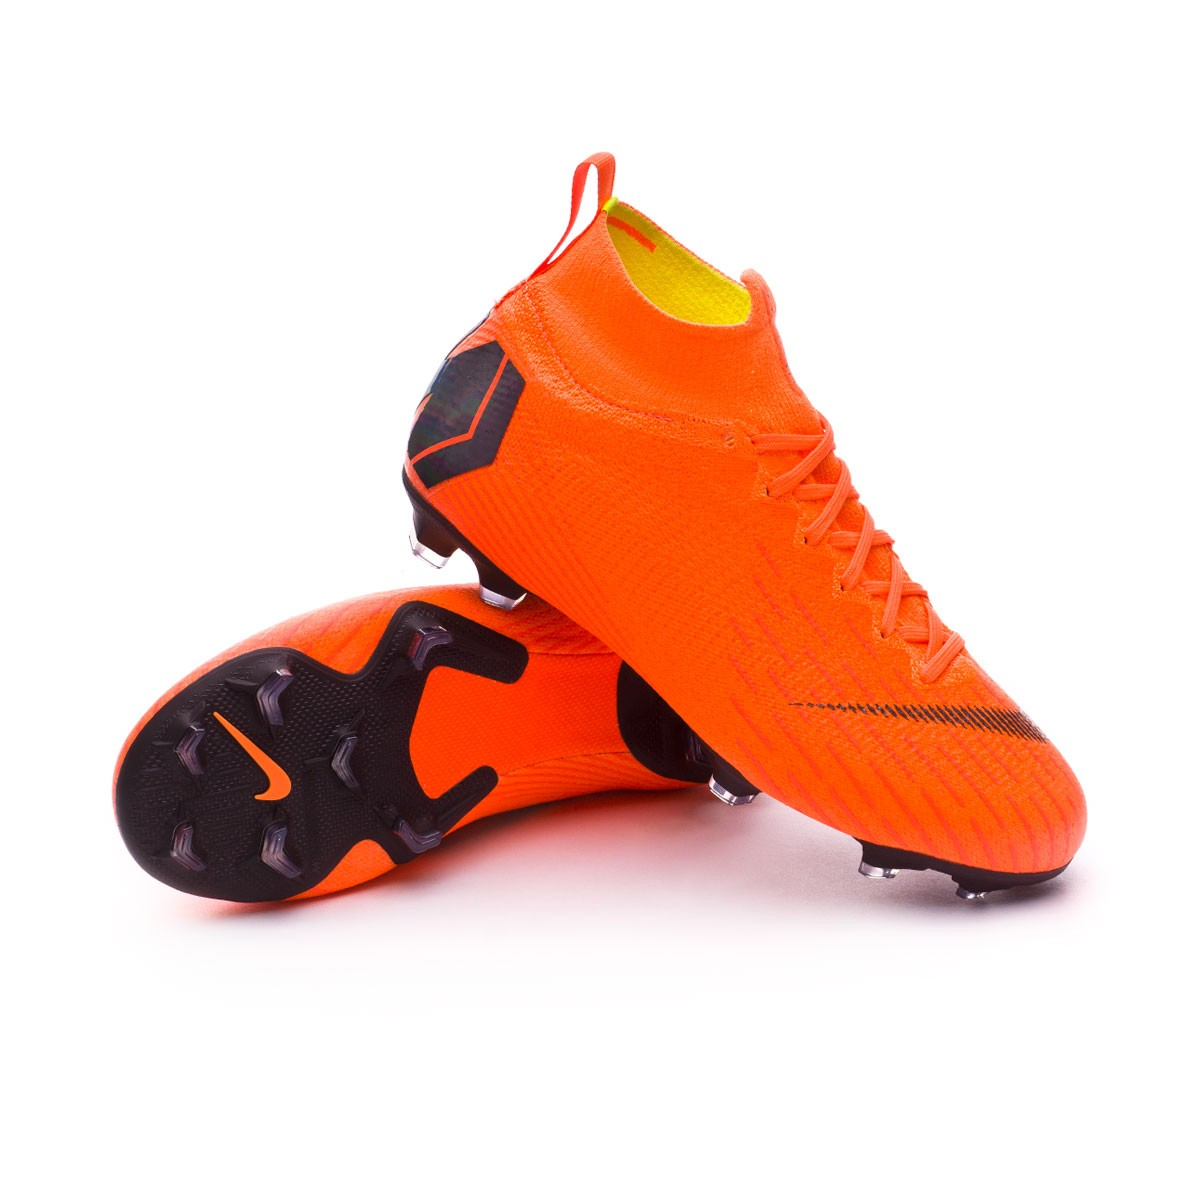 92ecbe021 Football Boots Nike Kids Mercurial Superfly VI Elite FG Total orange ...